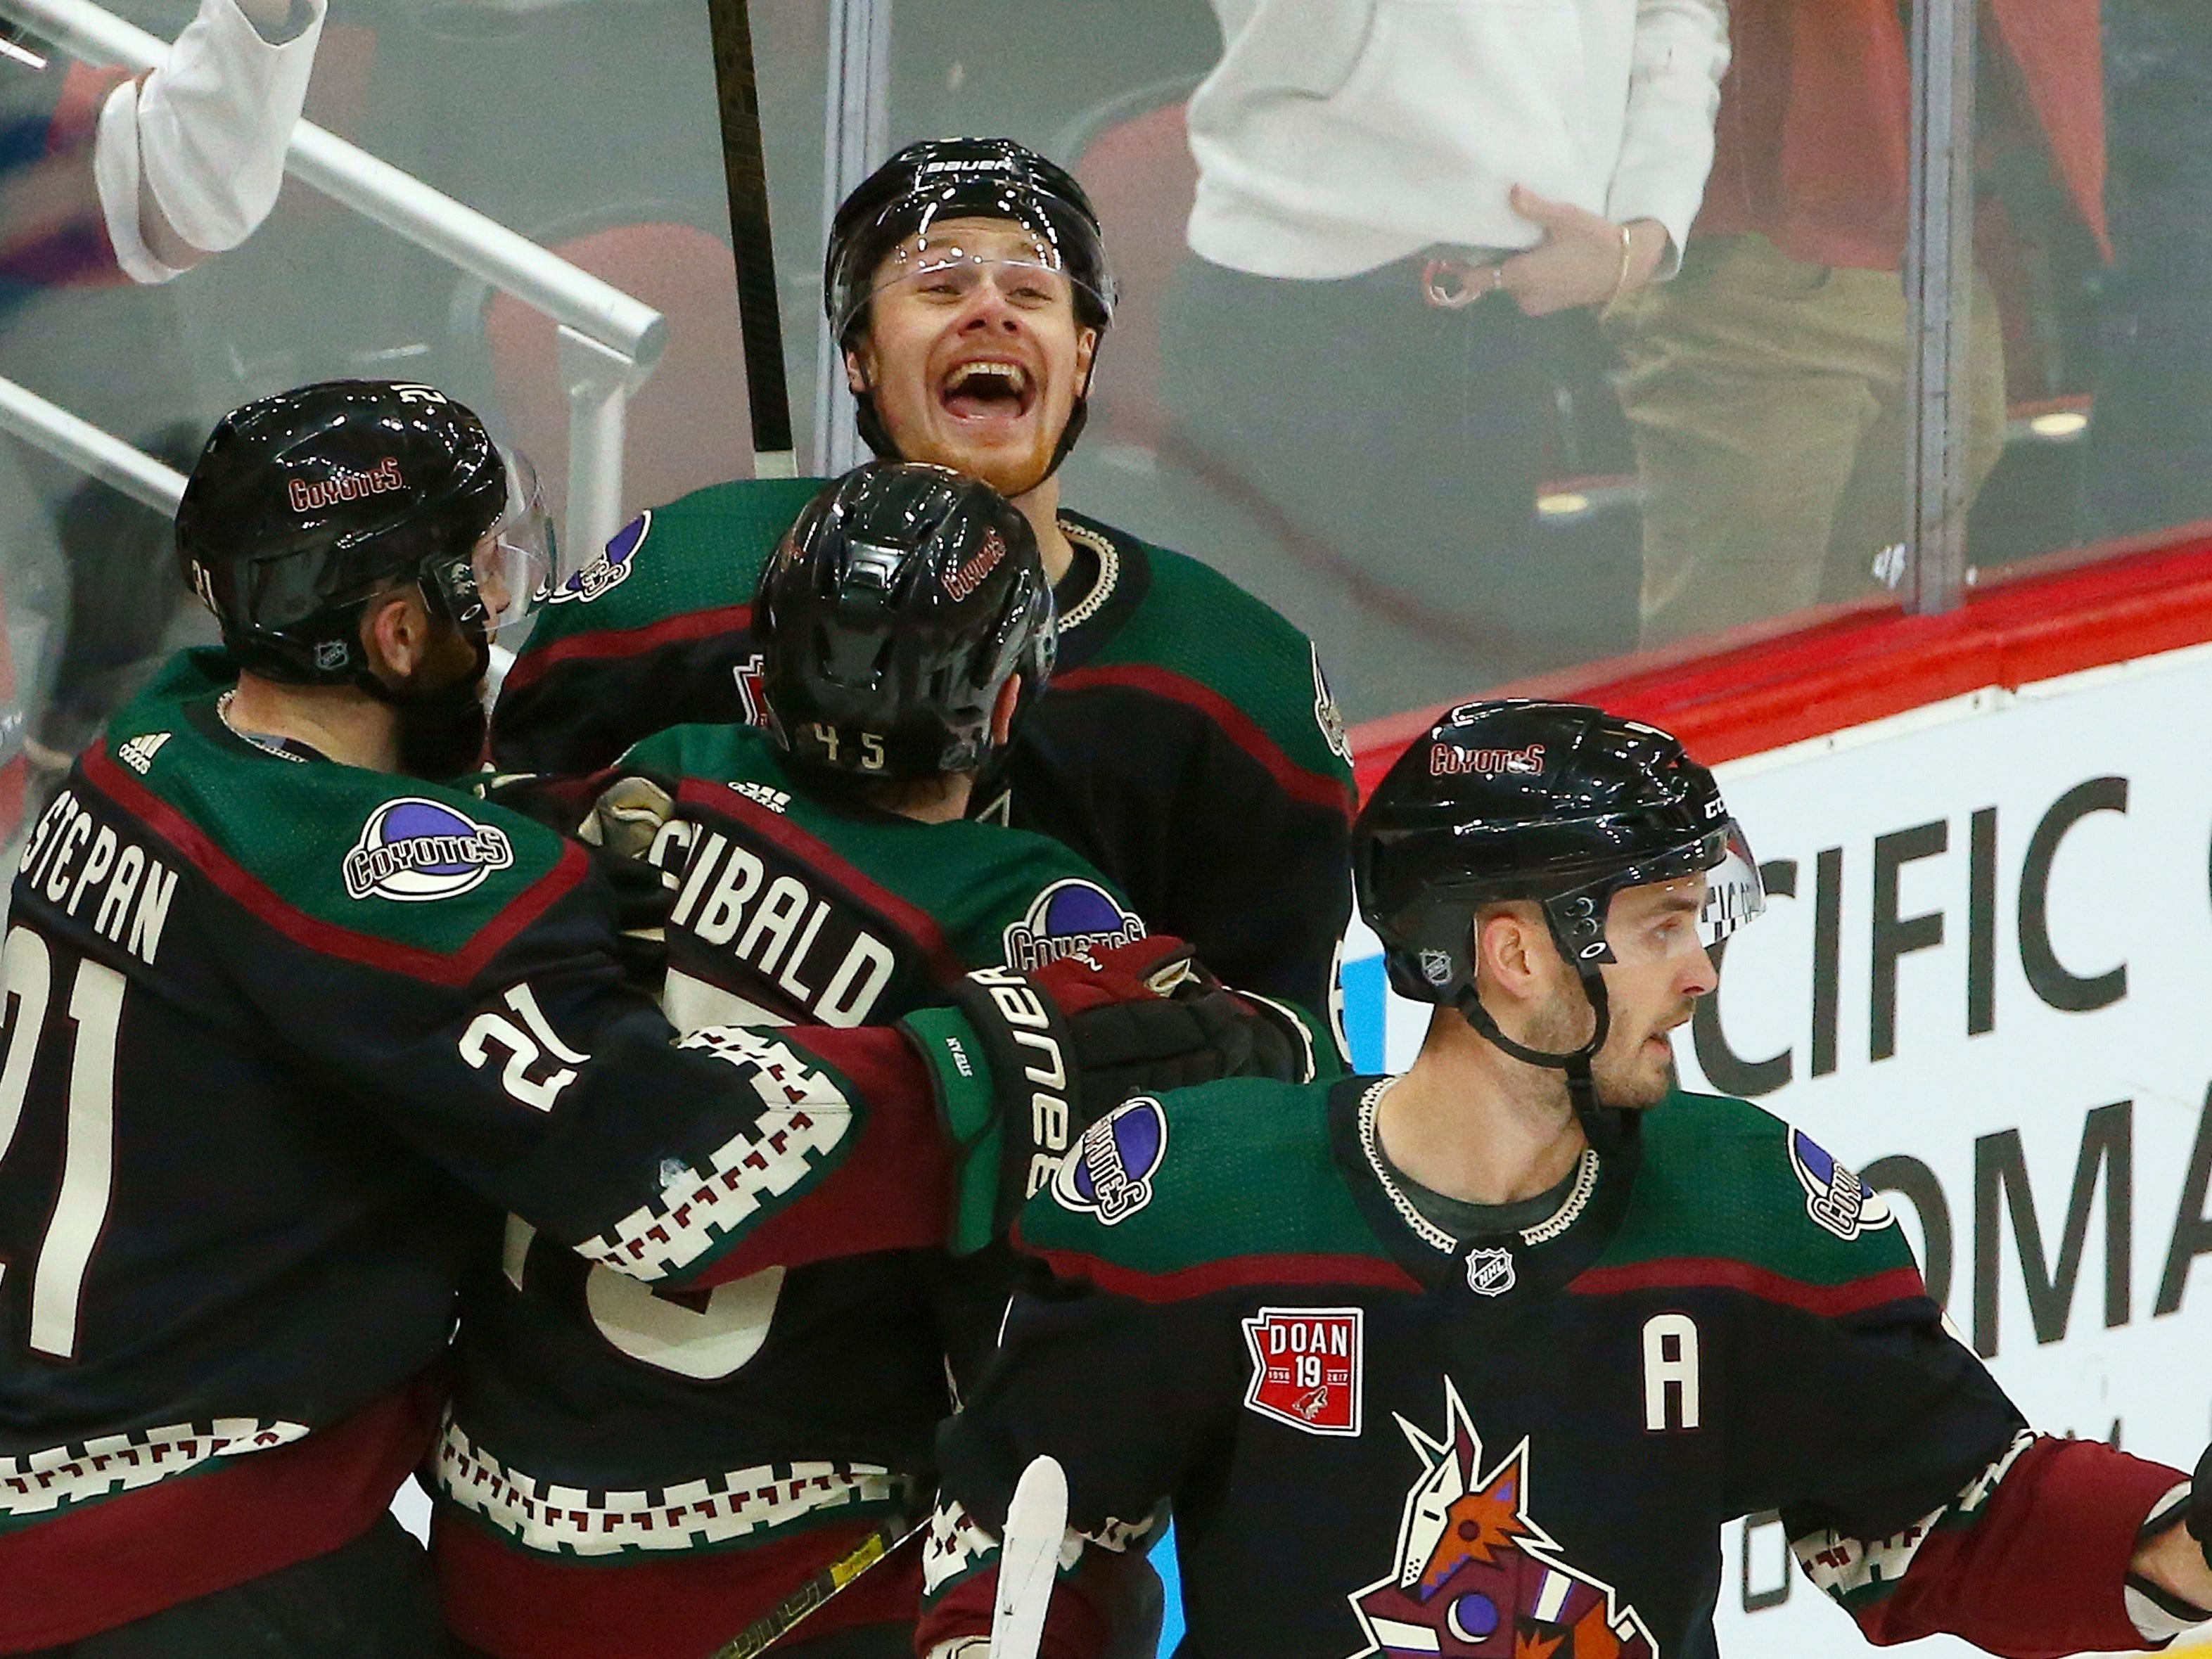 Arizona Coyotes left wing Lawson Crouse, top, shouts as he celebrates his goal against the Winnipeg Jets with Coyotes center Derek Stepan (21), right wing Josh Archibald, second from left, and defenseman Niklas Hjalmarsson, right, during the second period of an NHL hockey game Sunday, Feb. 24, 2019, in Glendale, Ariz.